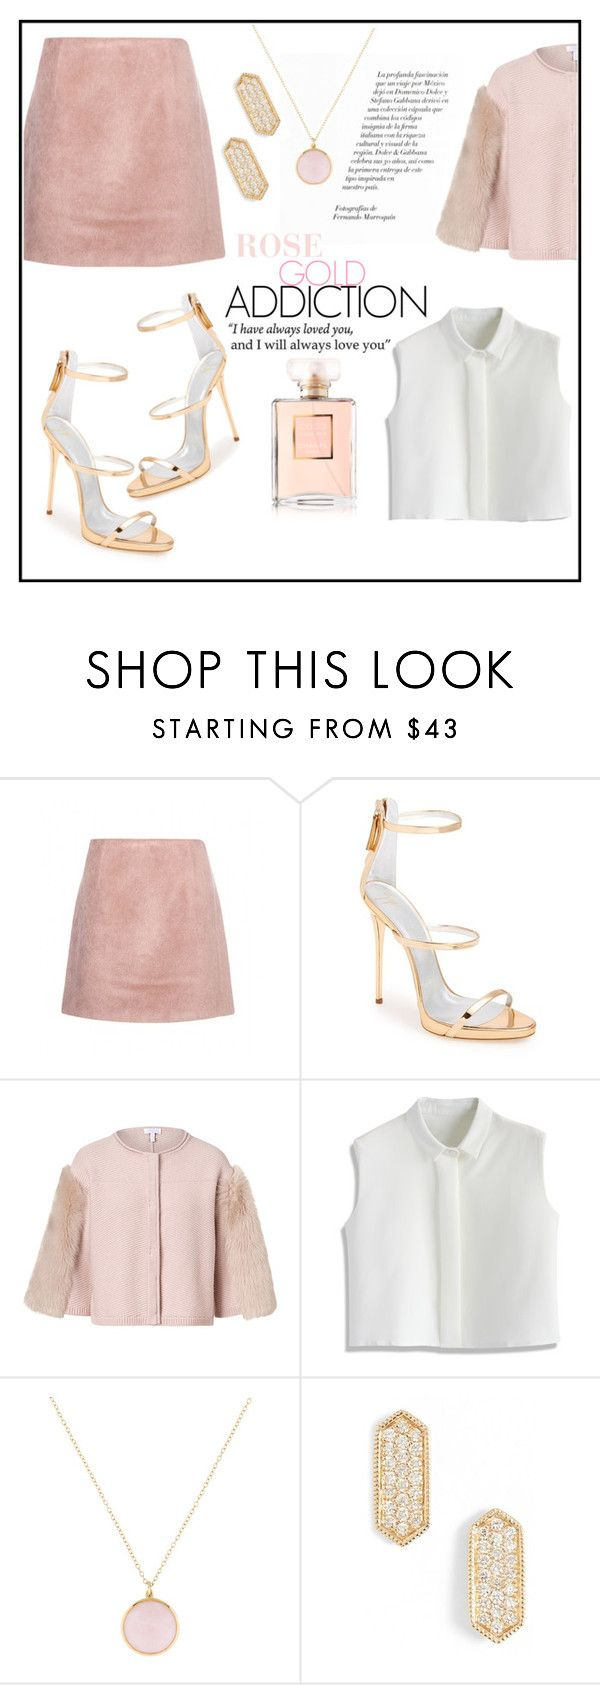 """""""ROSE AND GOLD SANDALS SET"""" by stylecious ❤ liked on Polyvore featuring Acne Studios, Giuseppe Zanotti, ESCADA, Chicwish, Ippolita, Dana Rebecca Designs, goldsandals and polyvoreeditorial"""